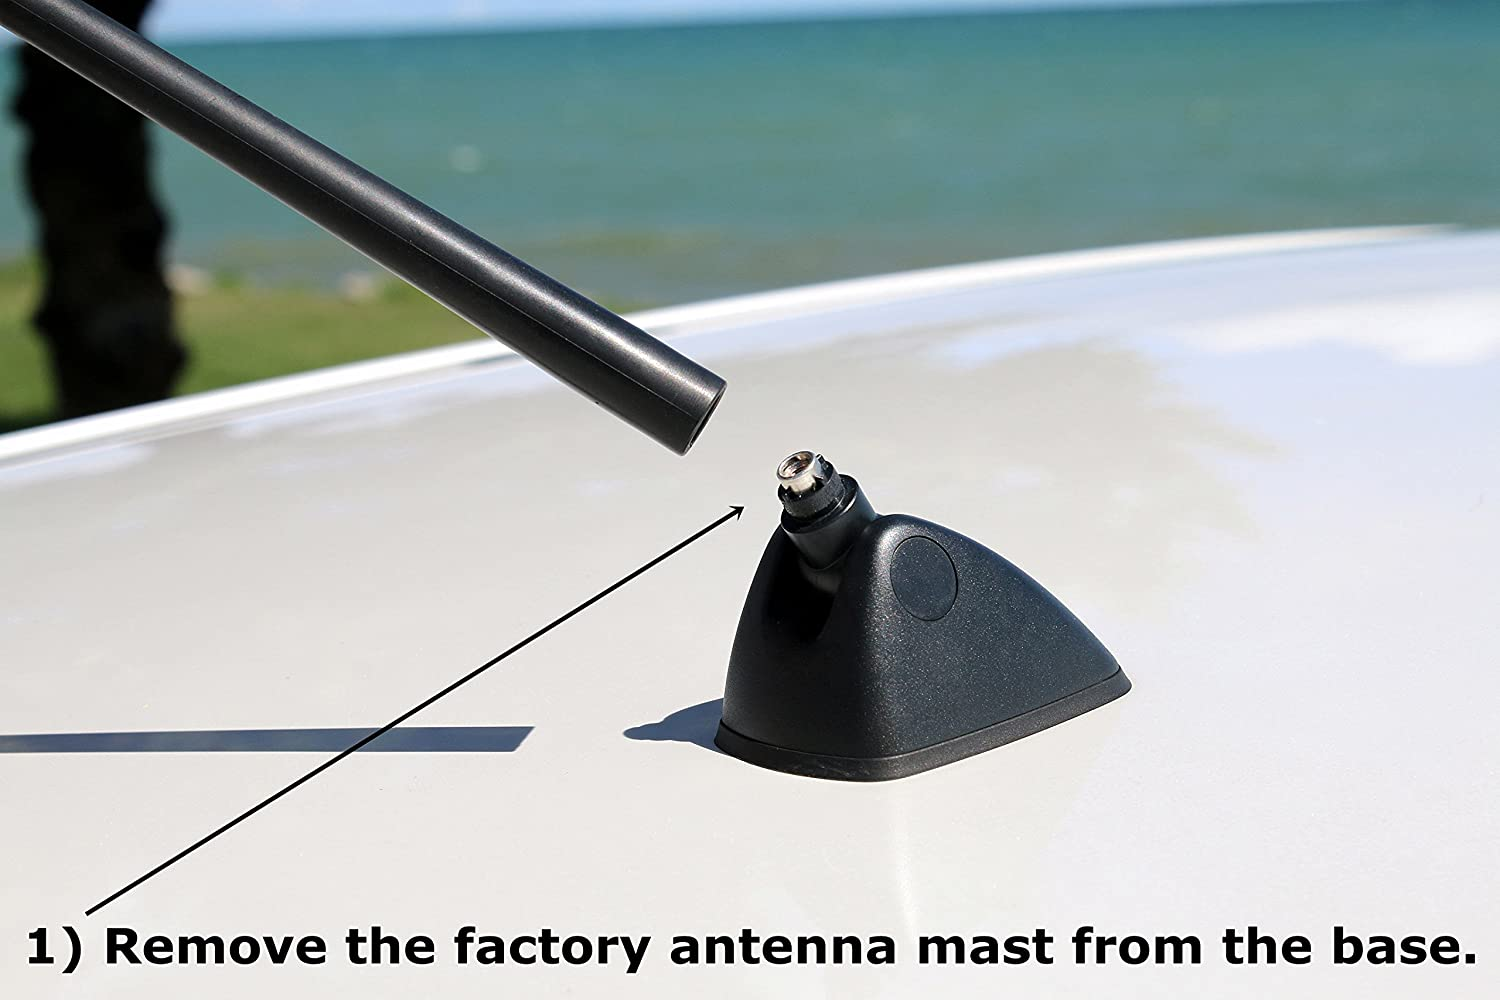 - Car Wash Proof Short Rubber Antenna 2010-2016 Premium Reception Internal Copper Coil AntennaMastsRus The Original 6 3//4 Inch is Compatible with Hyundai Tucson German Engineered